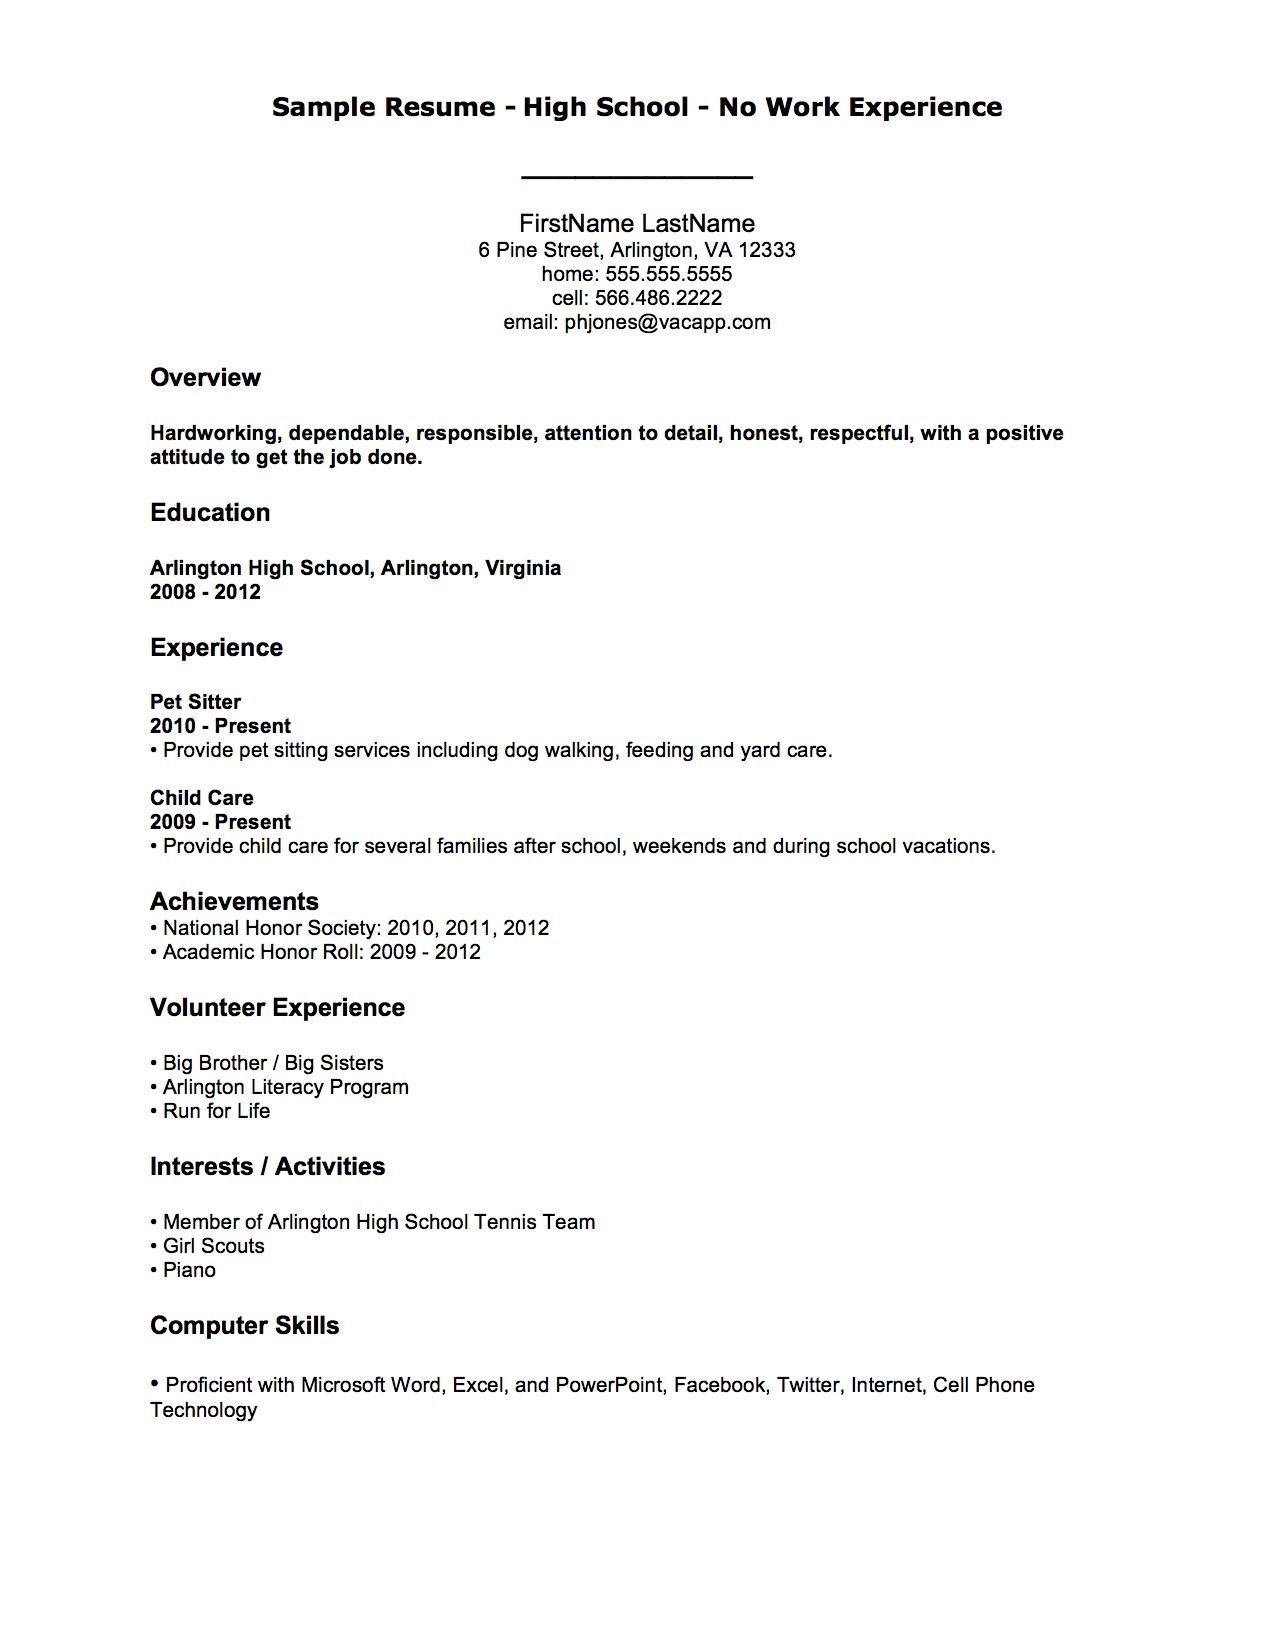 A Good Resume Example No Experience Resumes  Help I Need A Resume But I Have No